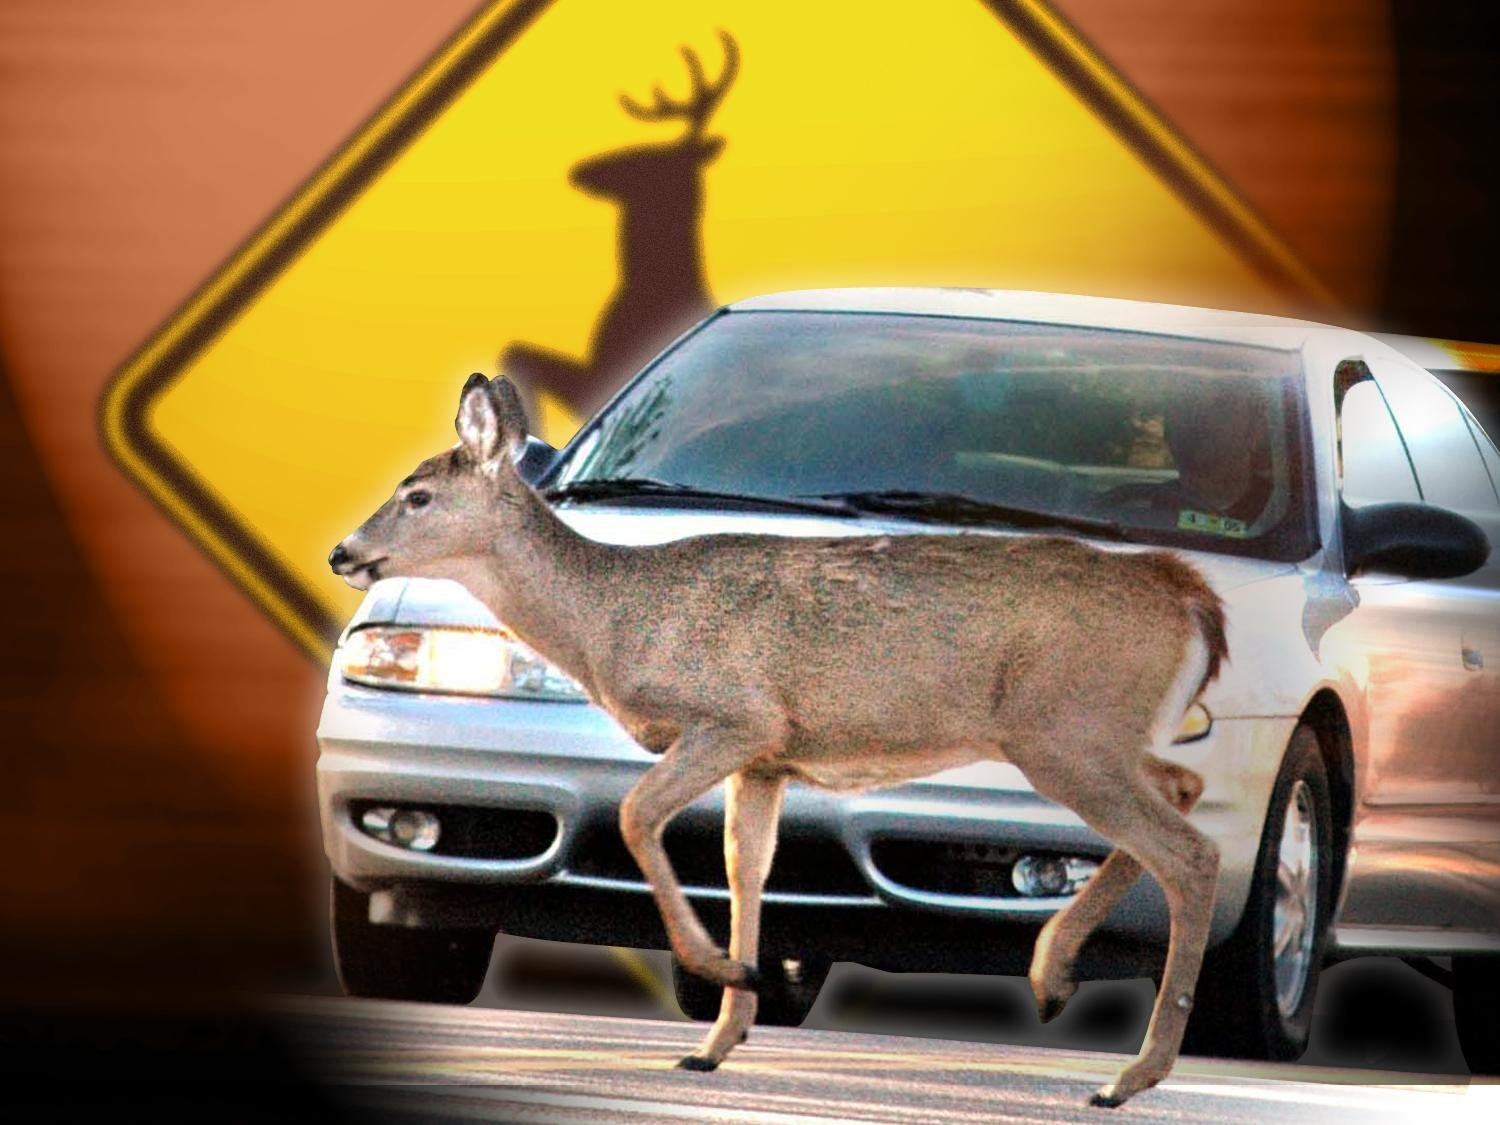 Department of transportation removes several wildlife speed zones across the state.